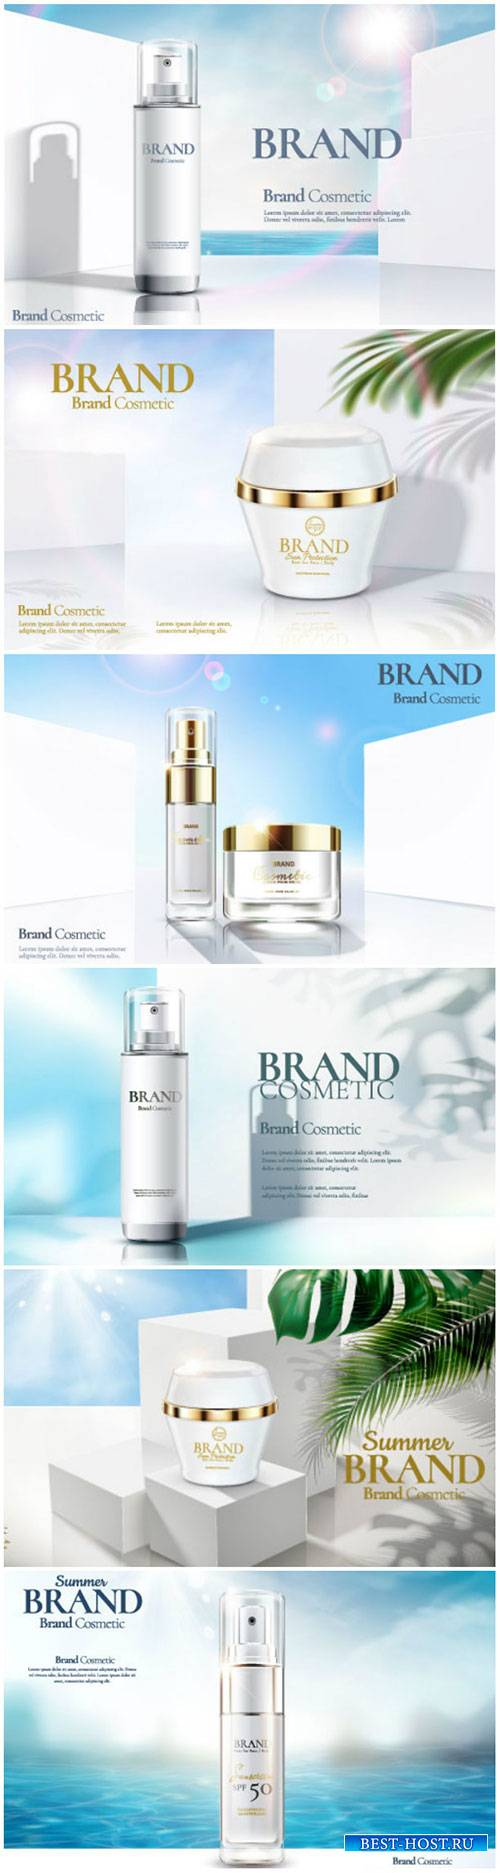 Brand cosmetic design, foundation banner ads # 5